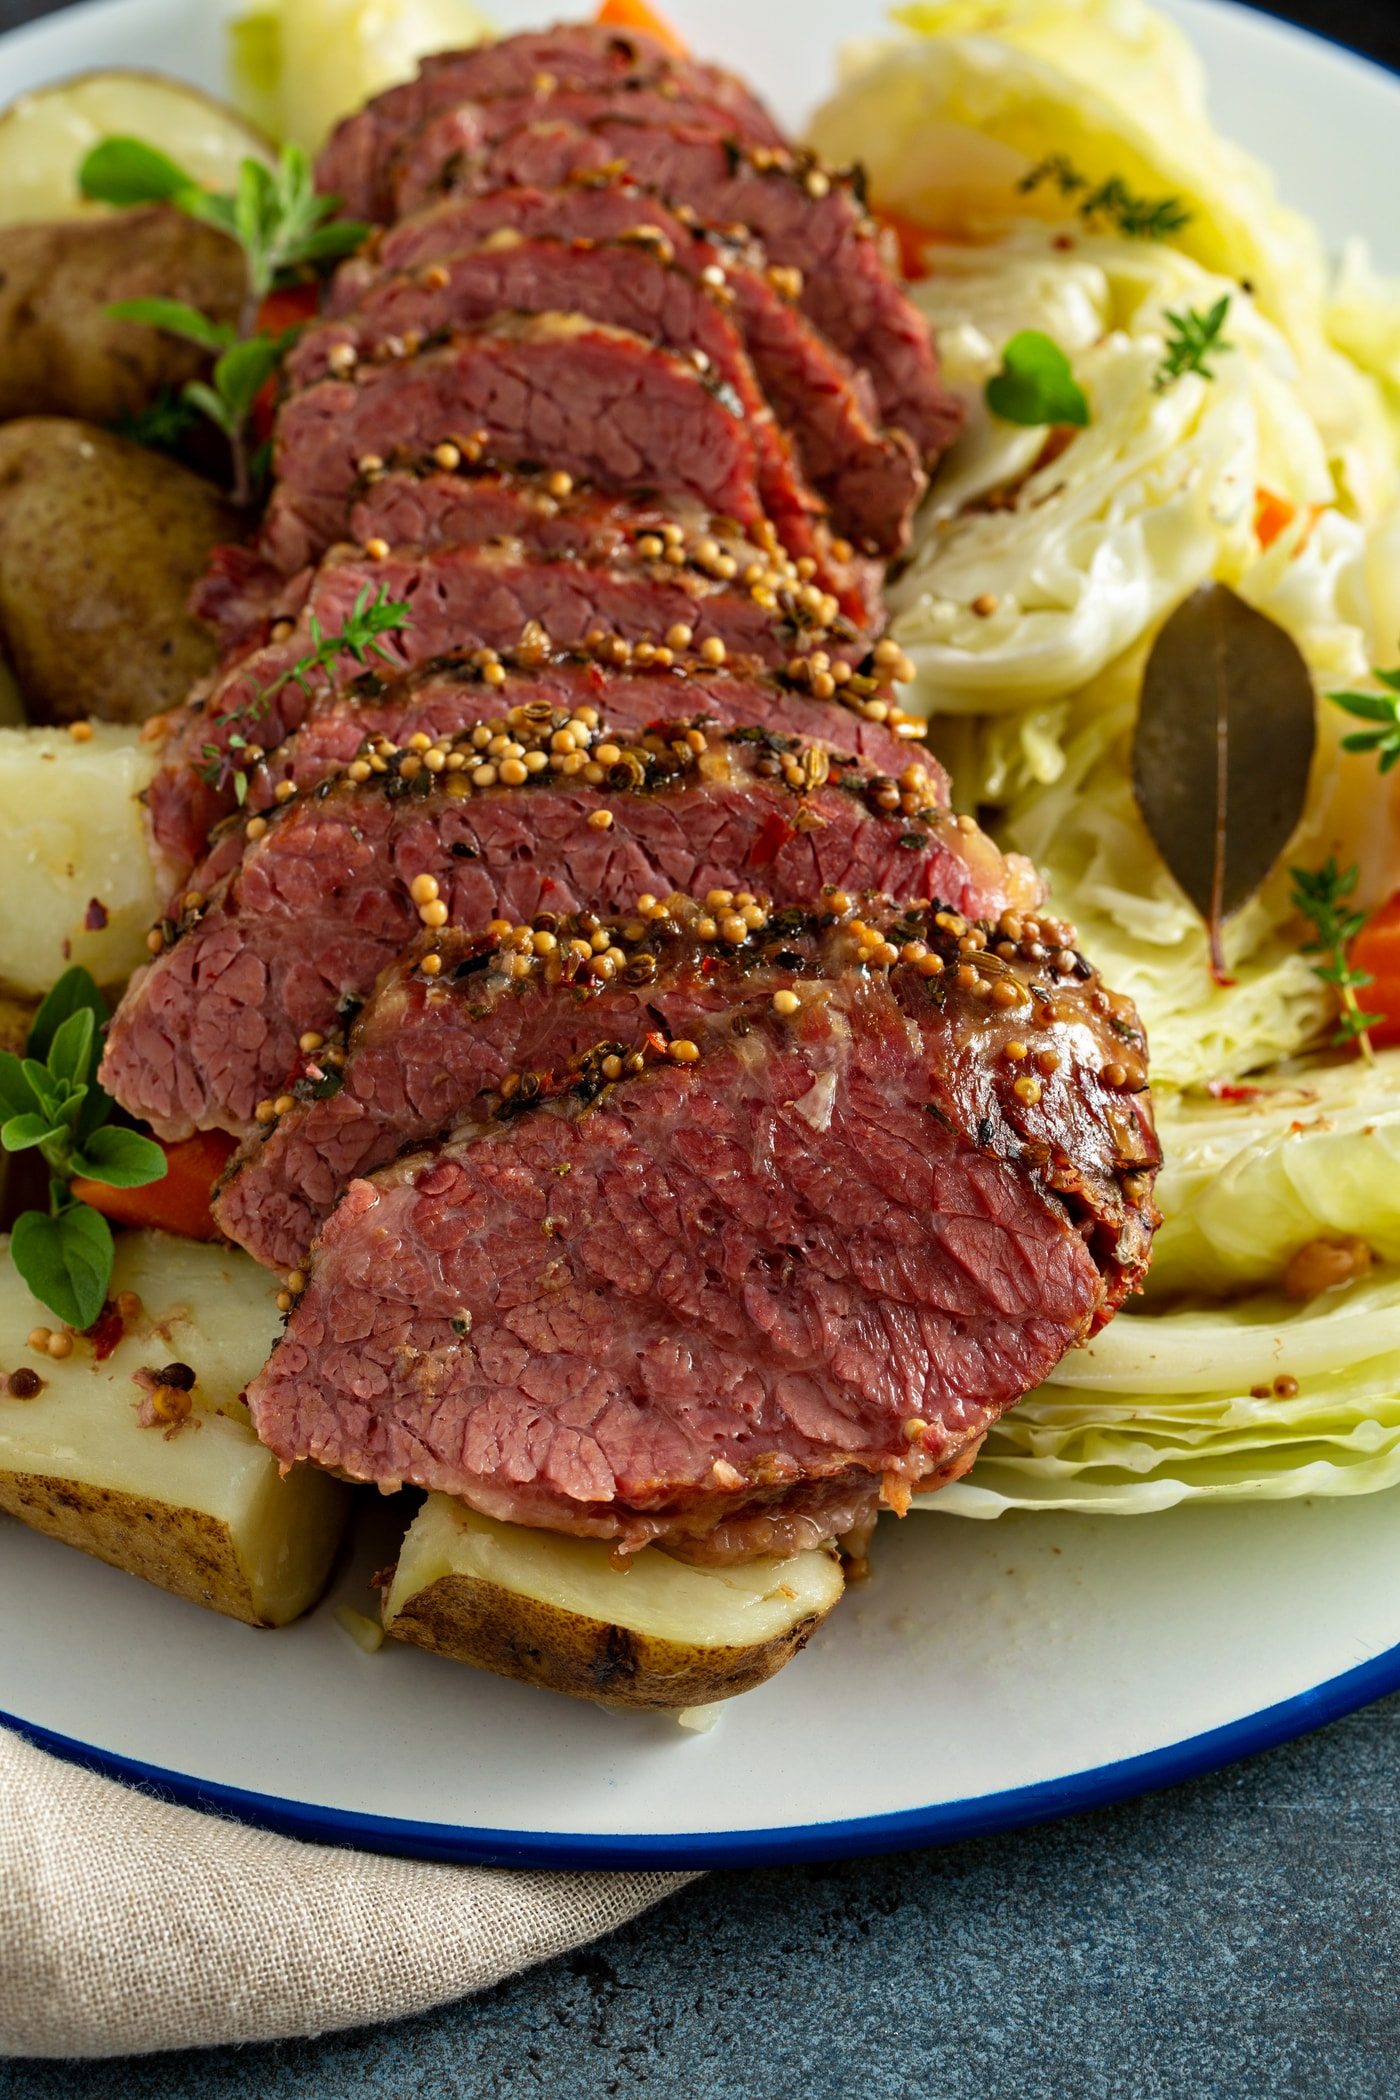 Sliced corned beef laying on top of potatoes, carrots and cabbage.